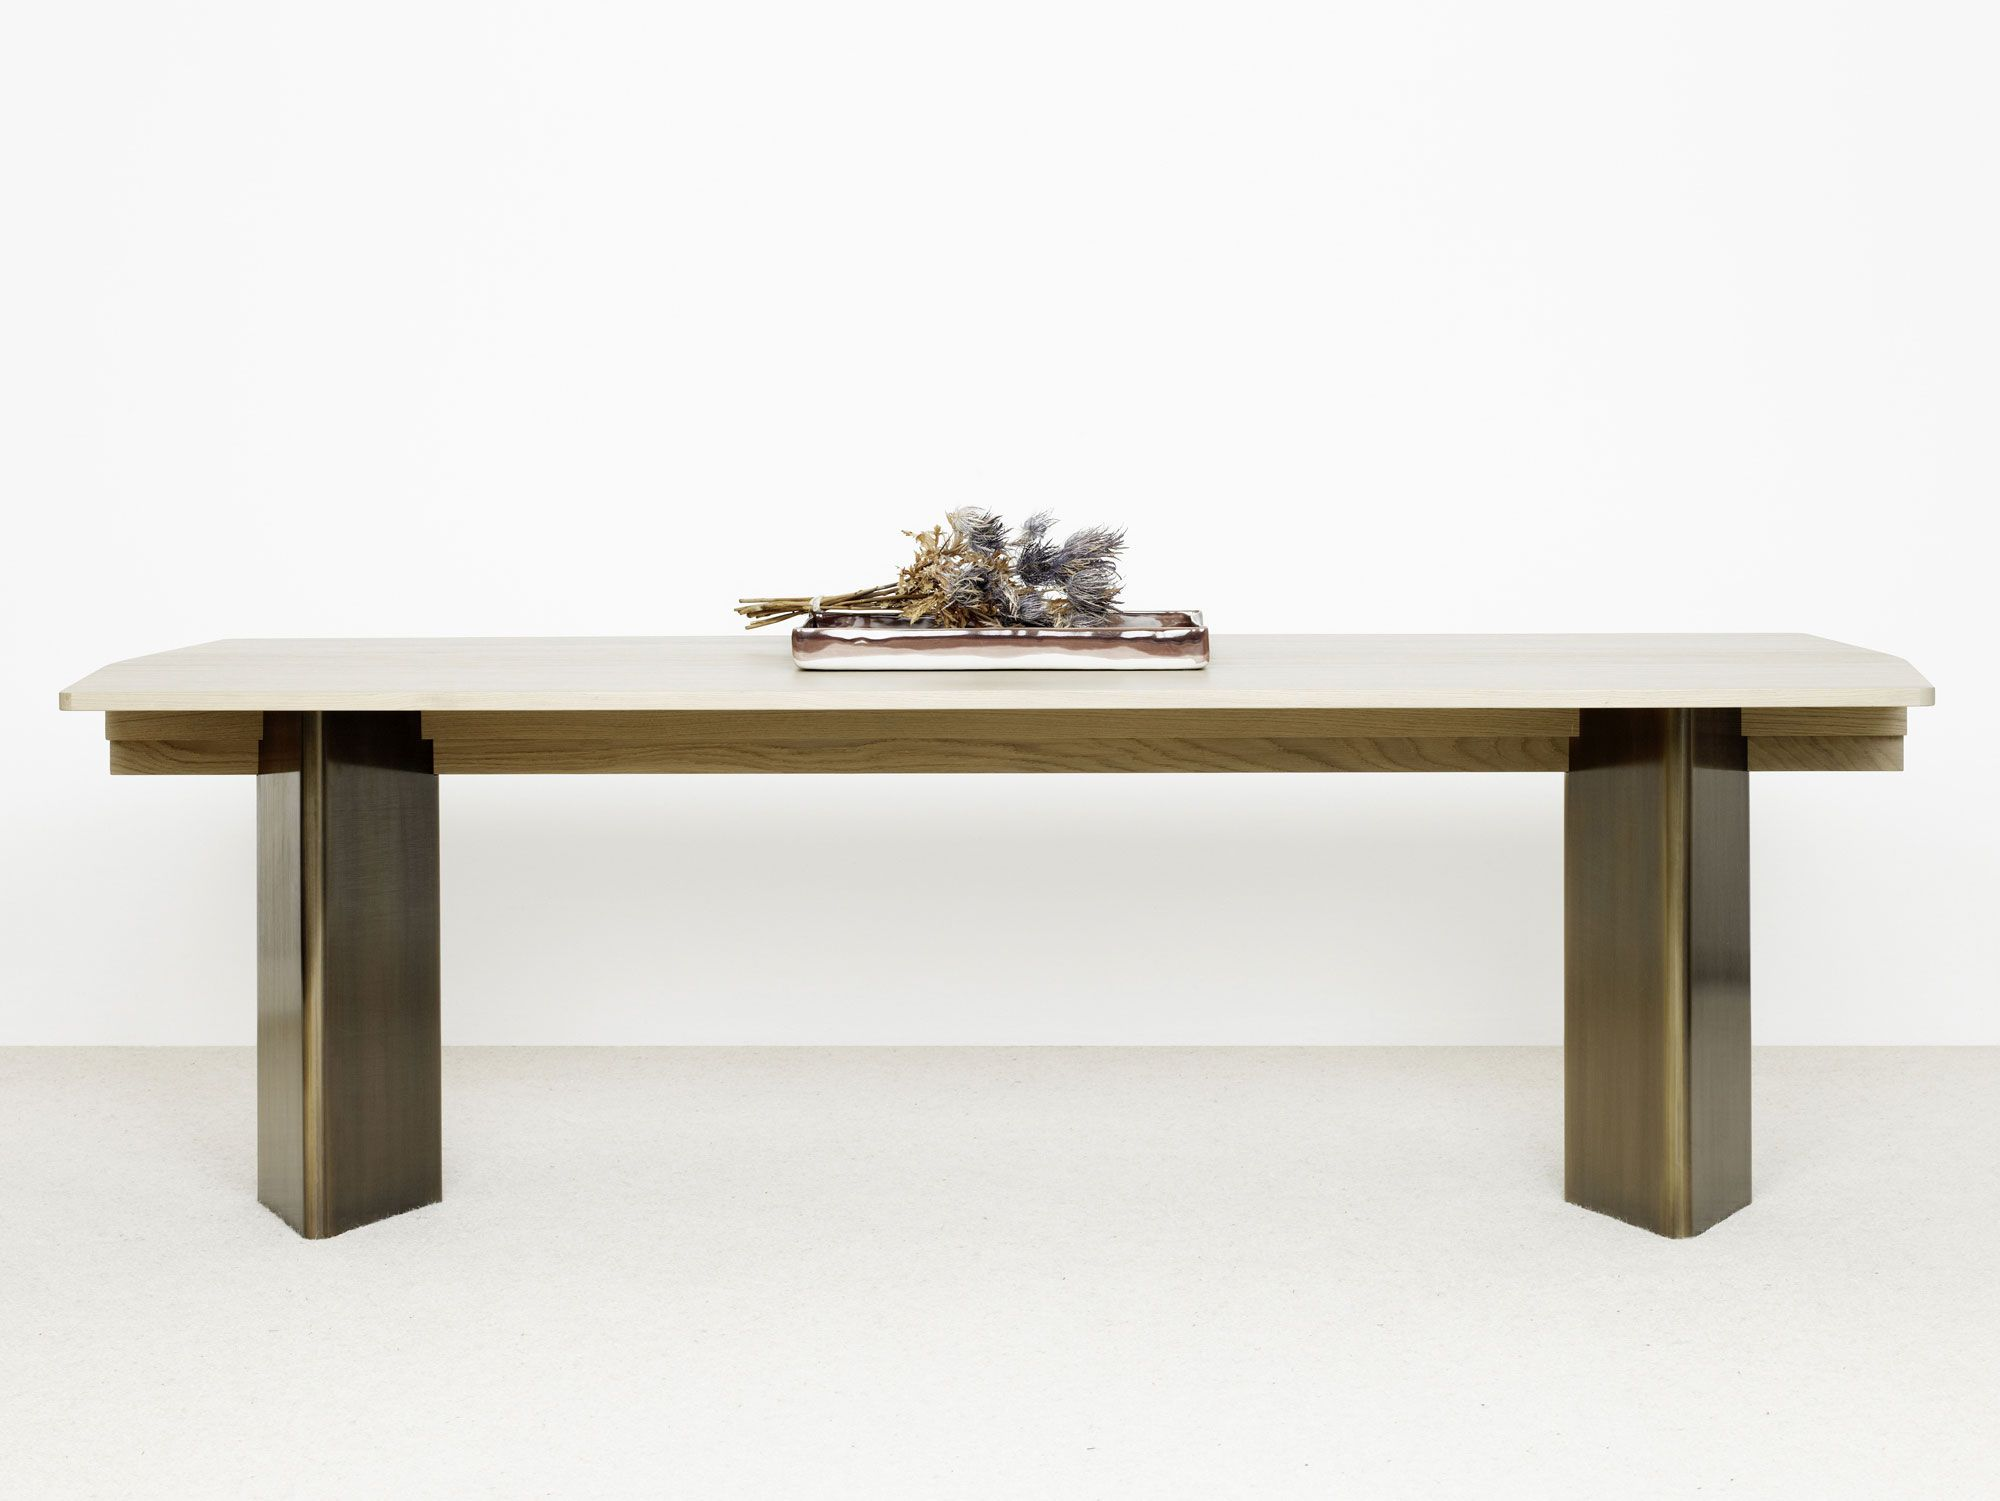 Meuble Langlais Zor Table Christophe Delcourt Tables Delcourt